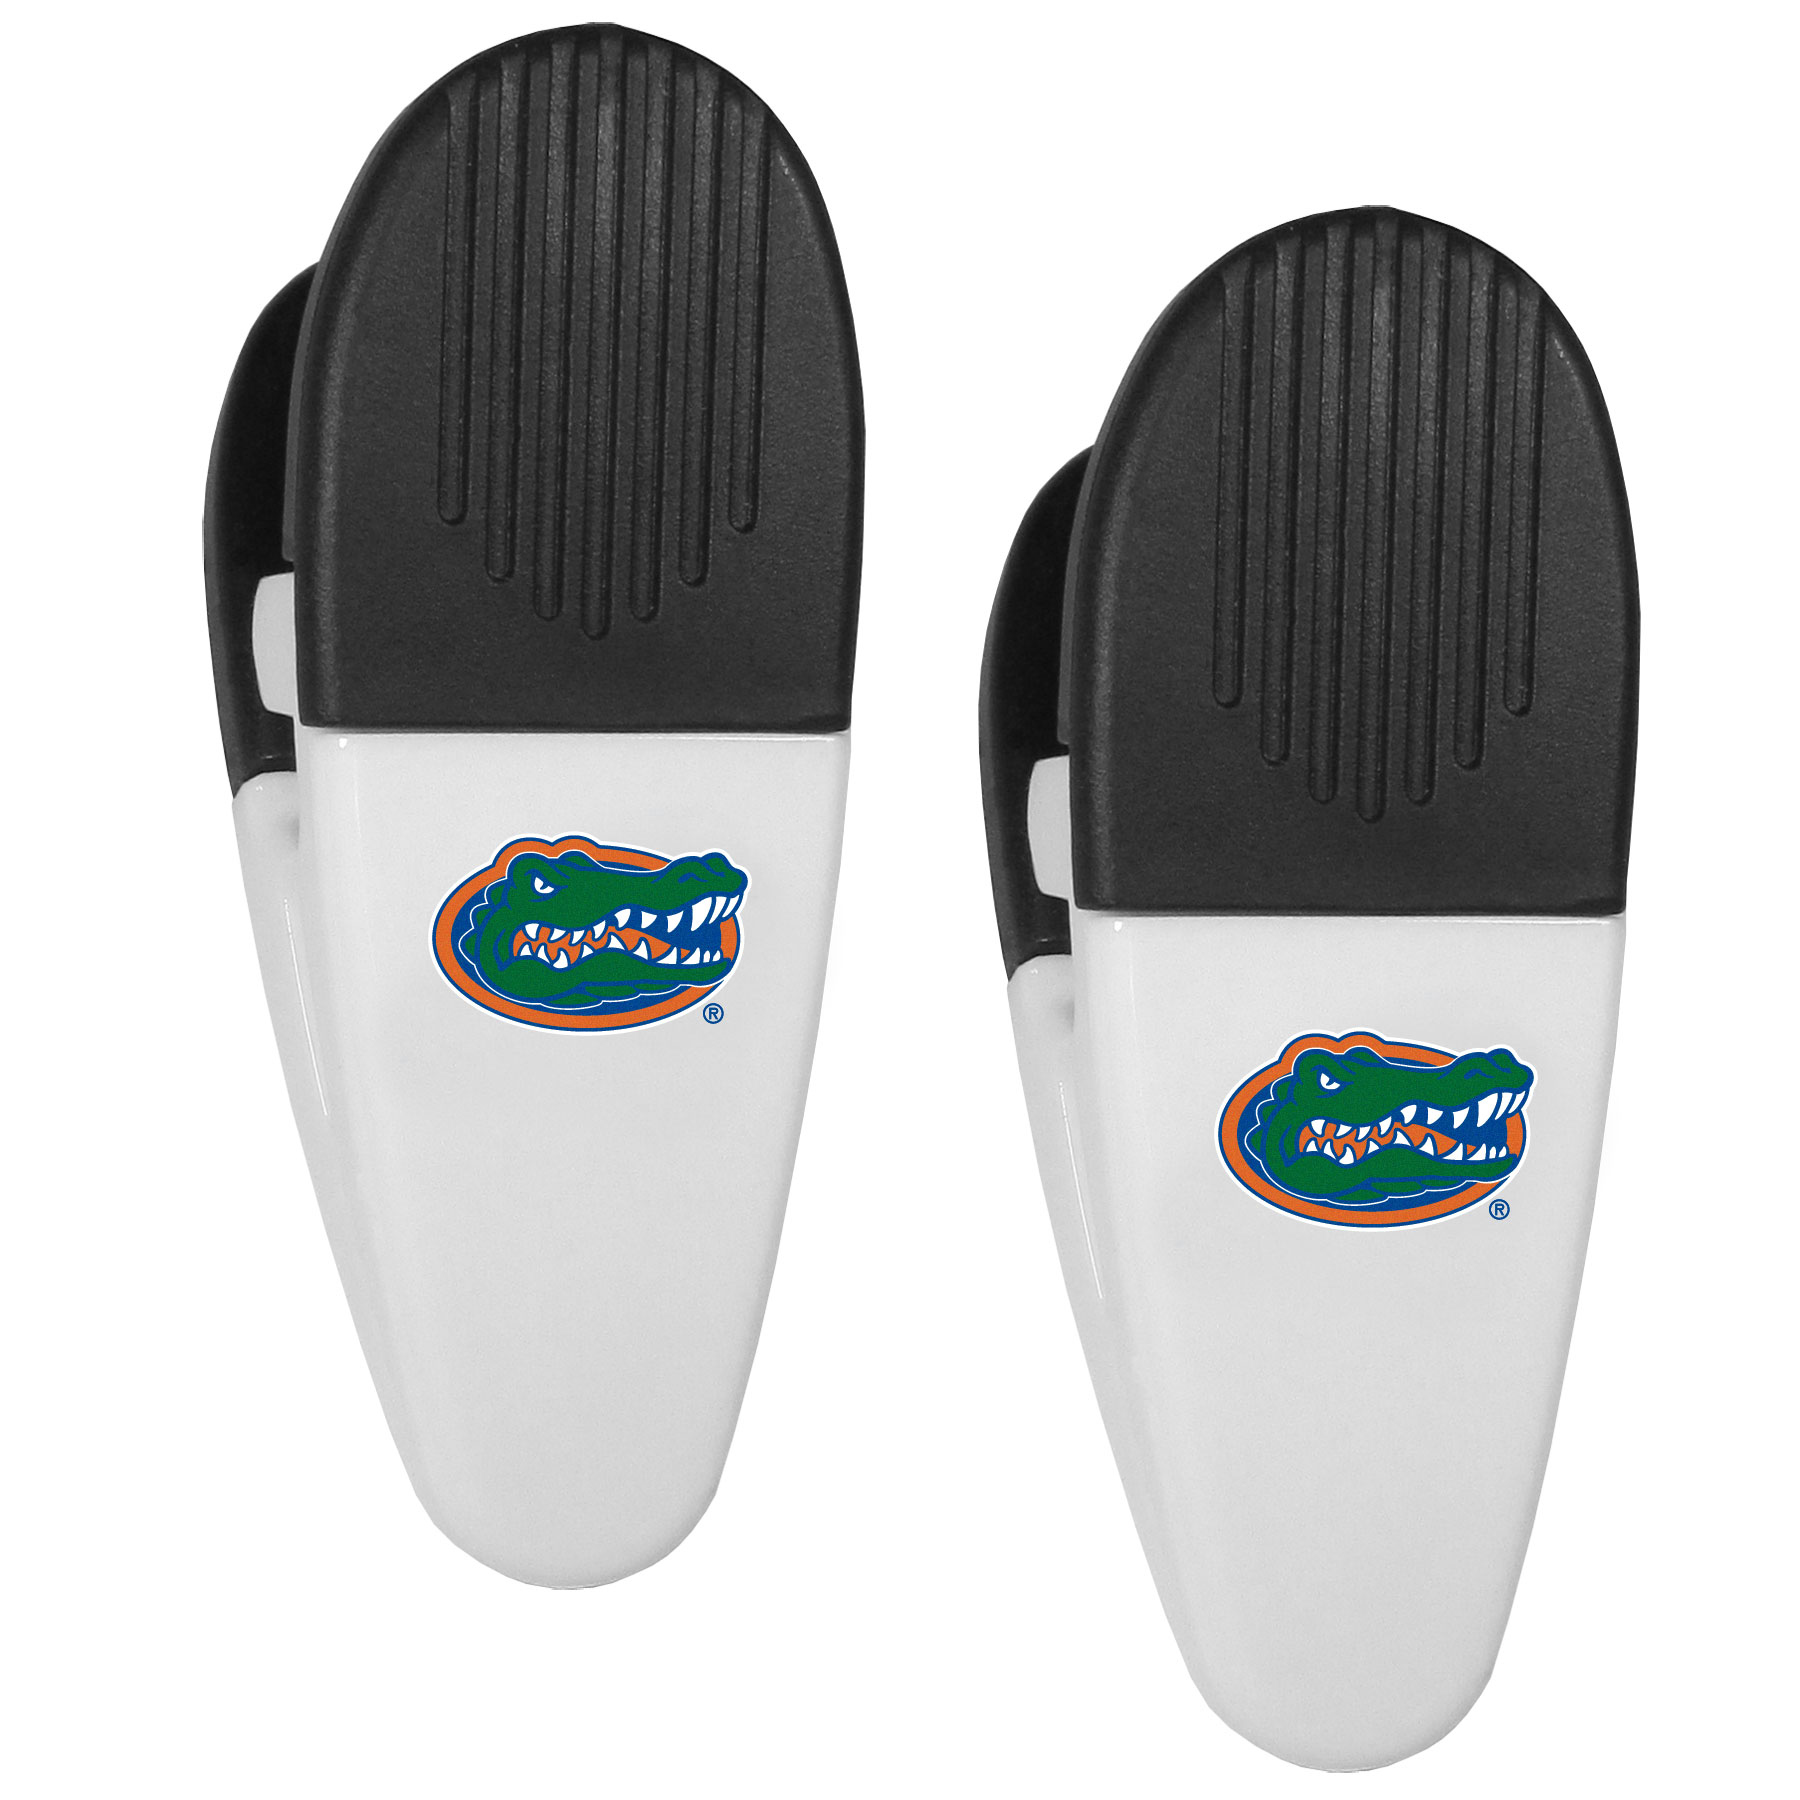 Florida Gators Mini Chip Clip Magnets, 2 pk - Our Florida Gators chip clip magnets feature a crisp team logo on the front of the clip. The clip is perfect for sealing chips for freshness and with the powerful magnet on the back it can be used to attach notes to the fridge or hanging your child's artwork. Set of 2 magnet clips, each clip is 3.5 inches tall and 1.25 inch wide.